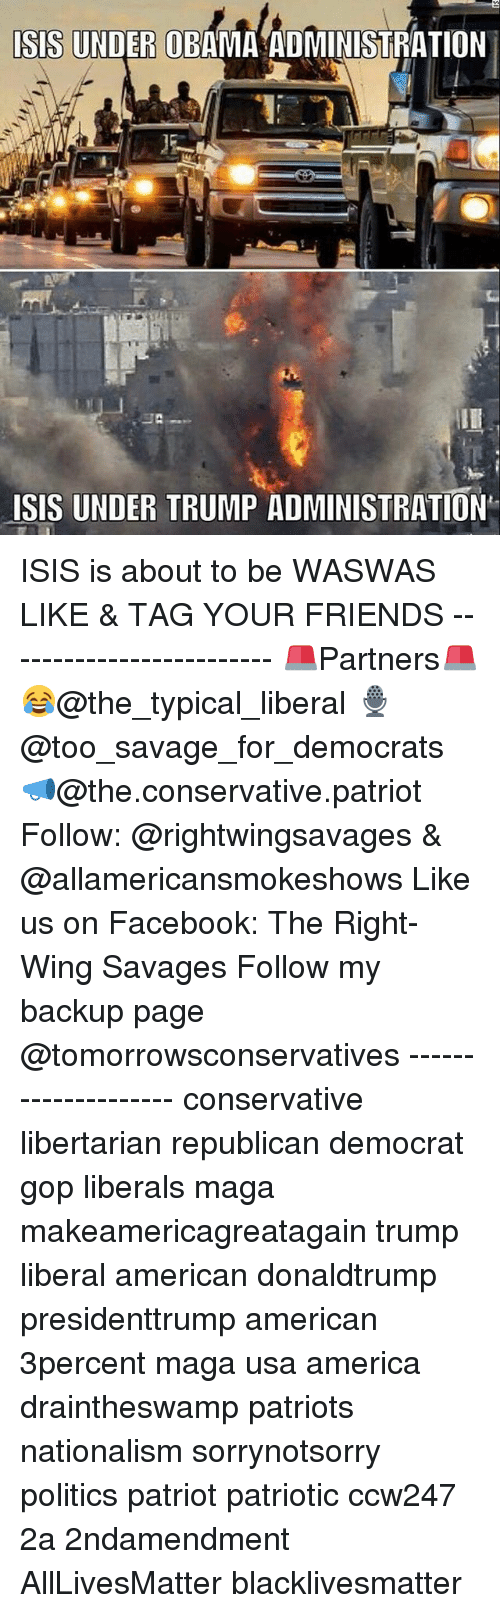 Waswas: ISS UNDER OBAMA ADMINISTRATION  ISIS UNDER TRUMP ADMINISTRATION ISIS is about to be WASWAS LIKE & TAG YOUR FRIENDS ------------------------- 🚨Partners🚨 😂@the_typical_liberal 🎙@too_savage_for_democrats 📣@the.conservative.patriot Follow: @rightwingsavages & @allamericansmokeshows Like us on Facebook: The Right-Wing Savages Follow my backup page @tomorrowsconservatives -------------------- conservative libertarian republican democrat gop liberals maga makeamericagreatagain trump liberal american donaldtrump presidenttrump american 3percent maga usa america draintheswamp patriots nationalism sorrynotsorry politics patriot patriotic ccw247 2a 2ndamendment AllLivesMatter blacklivesmatter